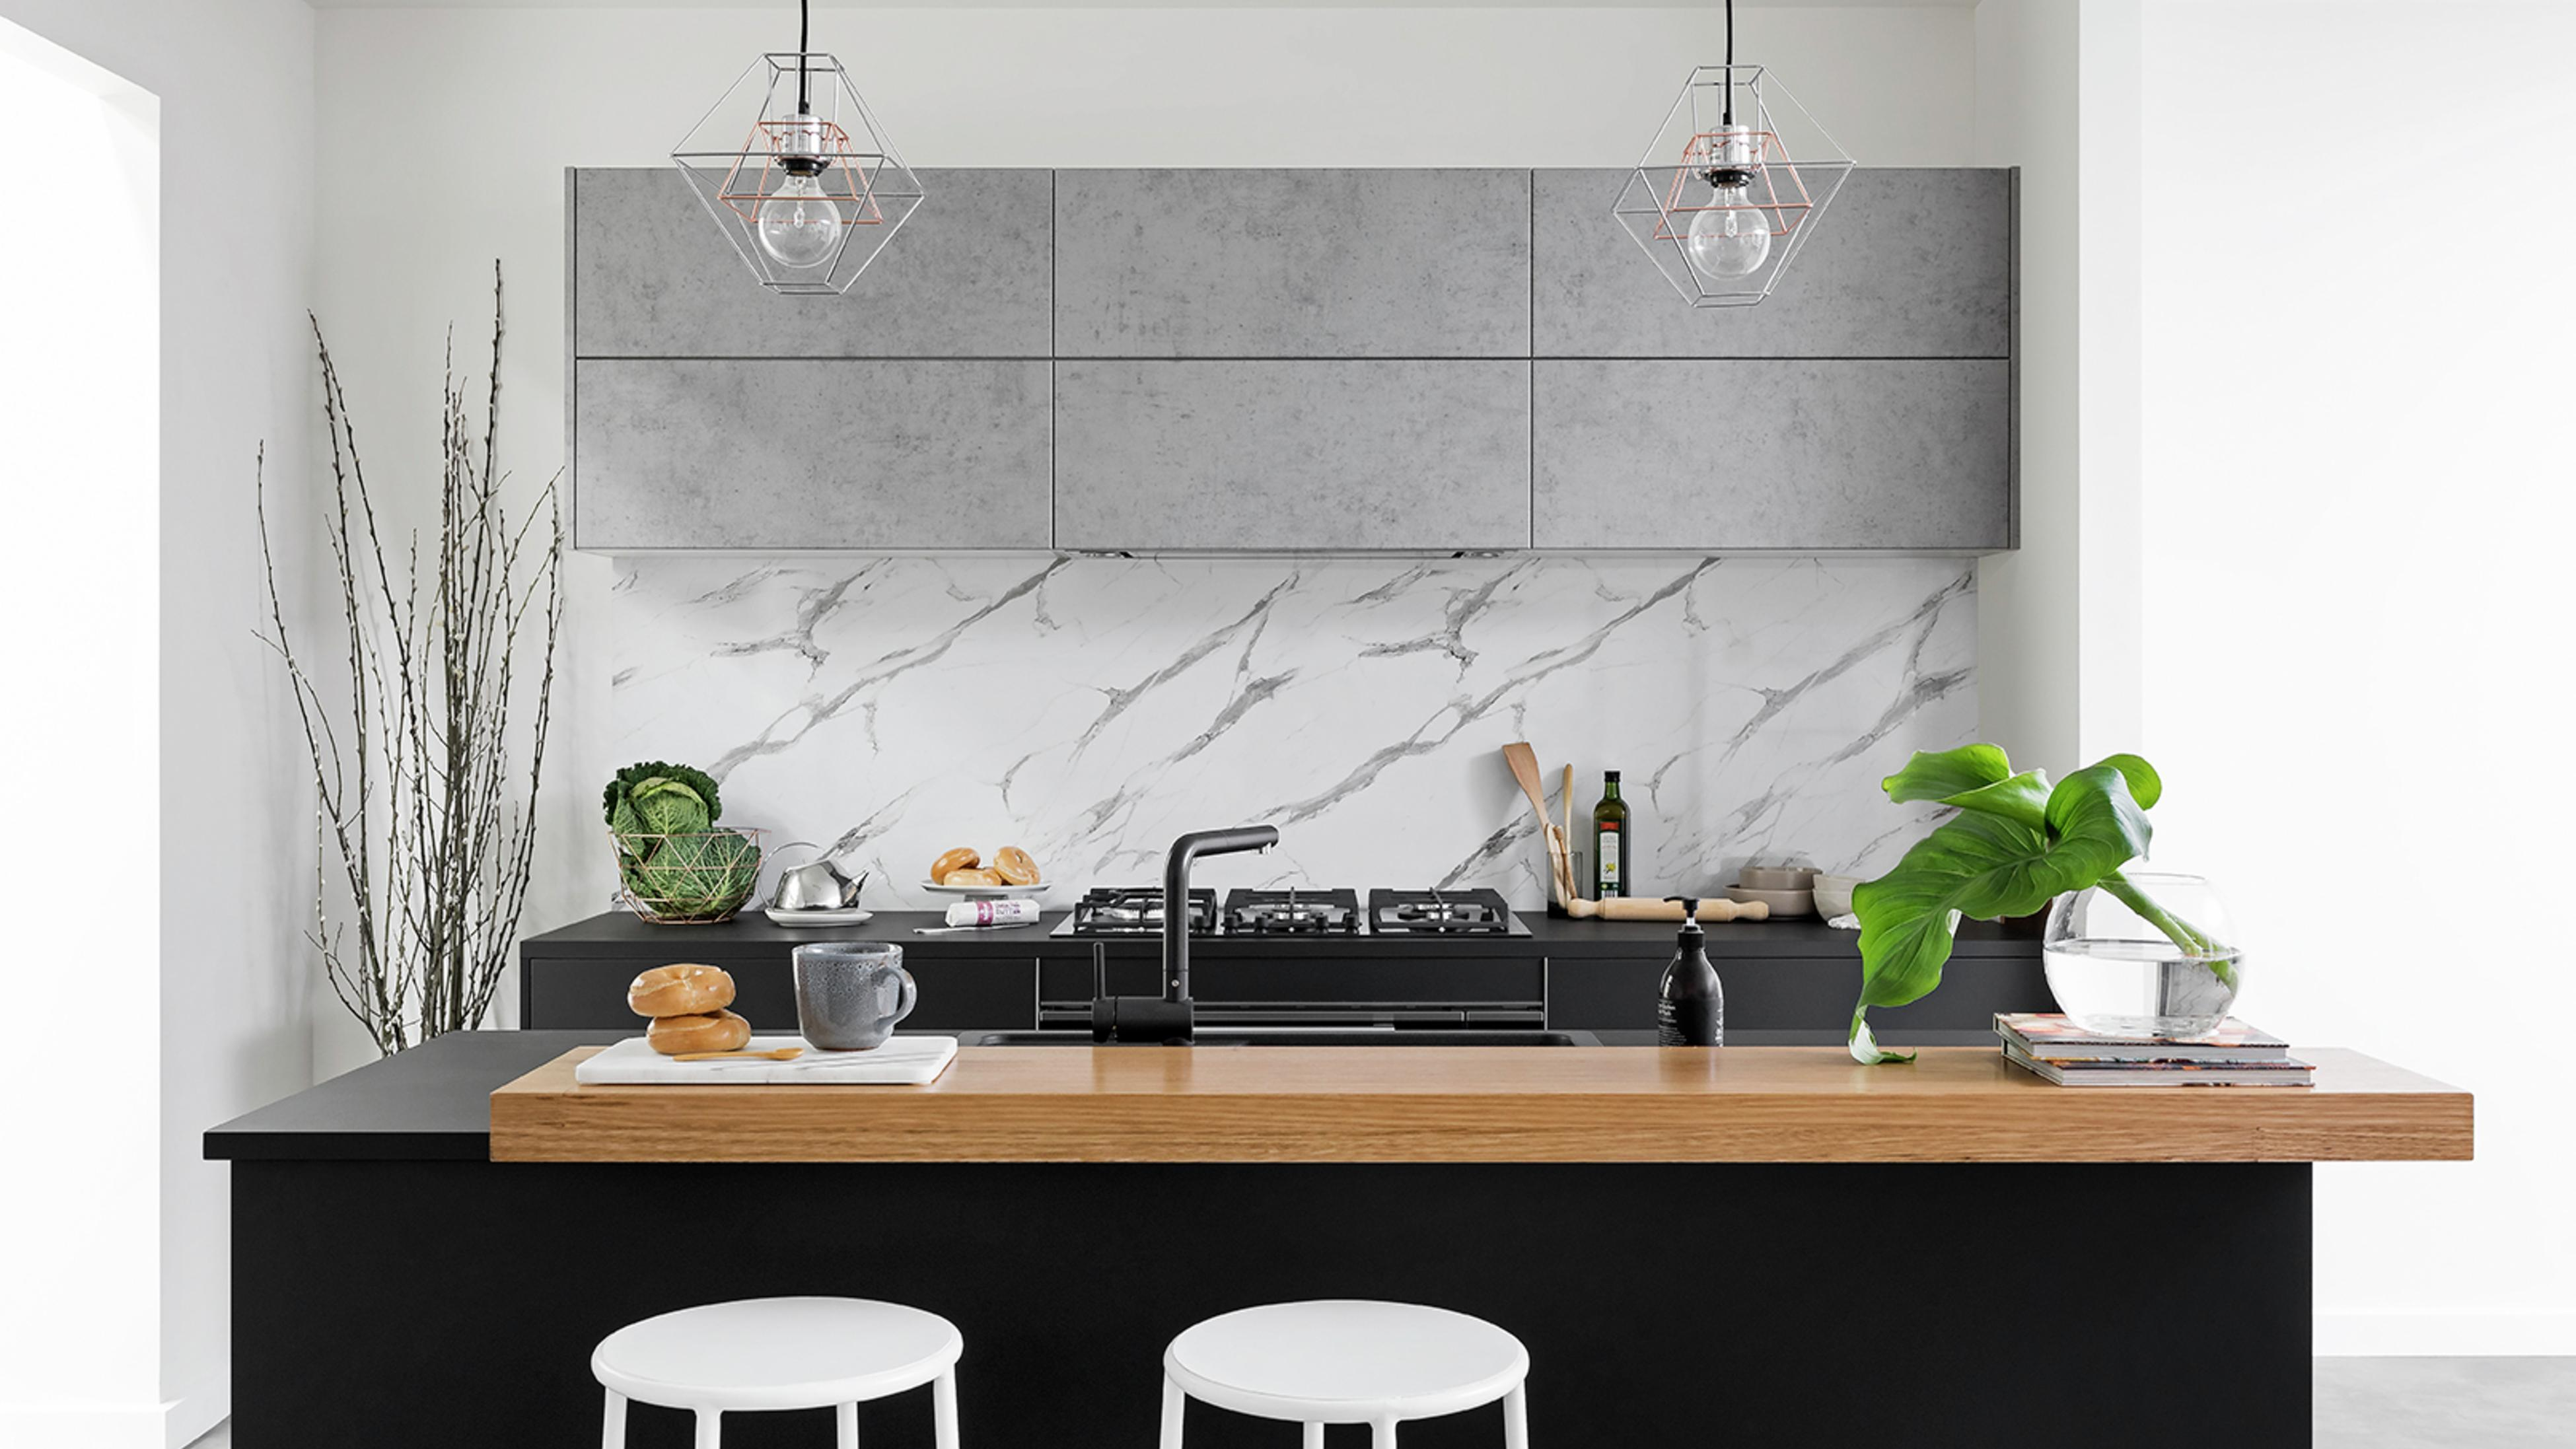 Timber kitchen benchtop with stools